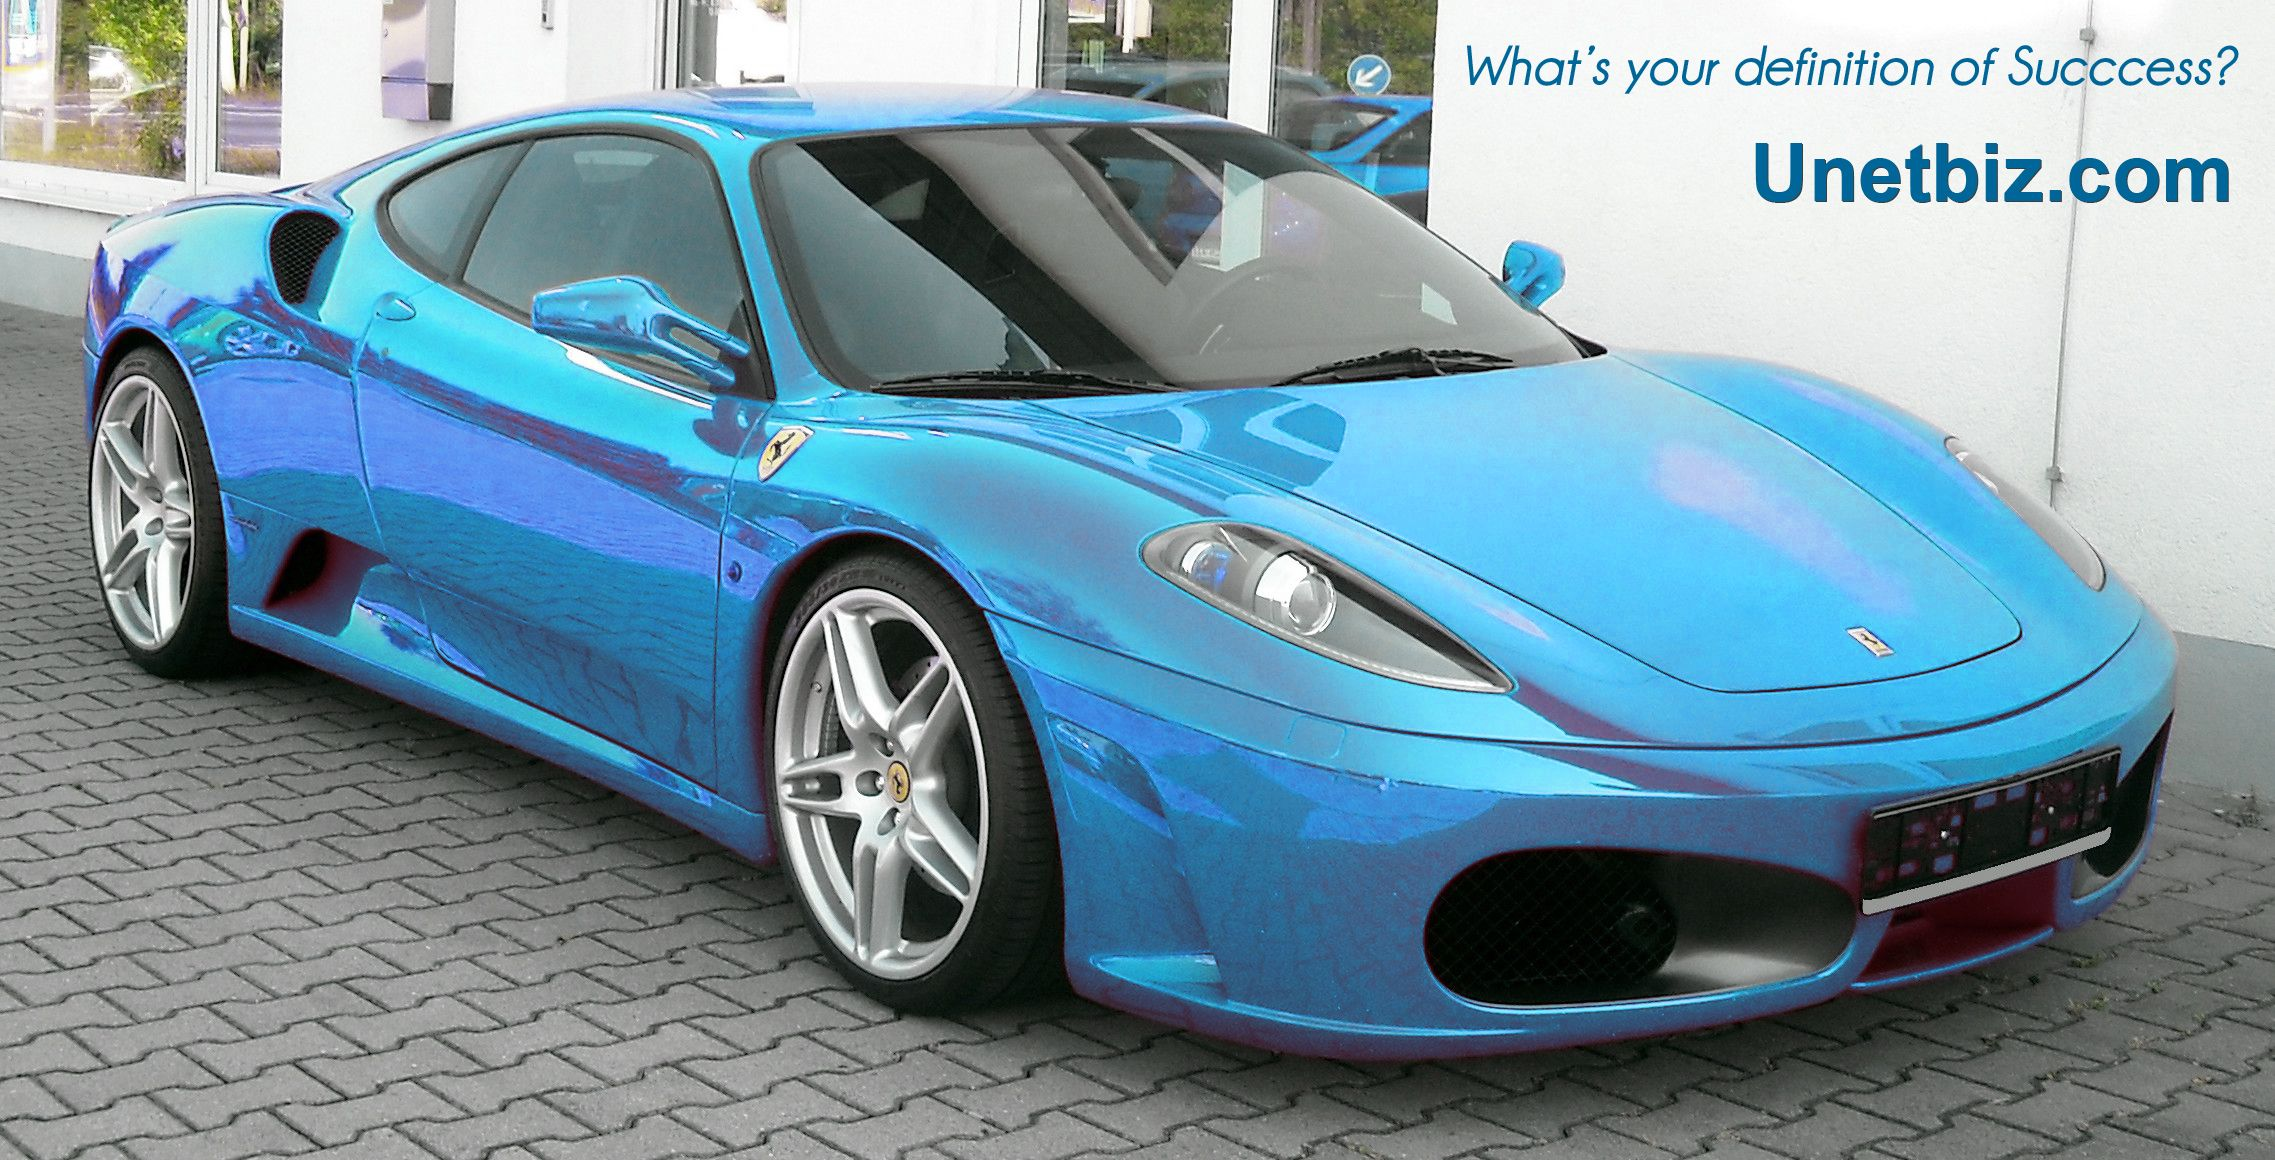 www.unetbiz.com - turn your passion into a business. Tags: Internet Business course, Internet Marketing, SIngapore, Jakarta, Blue Ferrari Sports Car